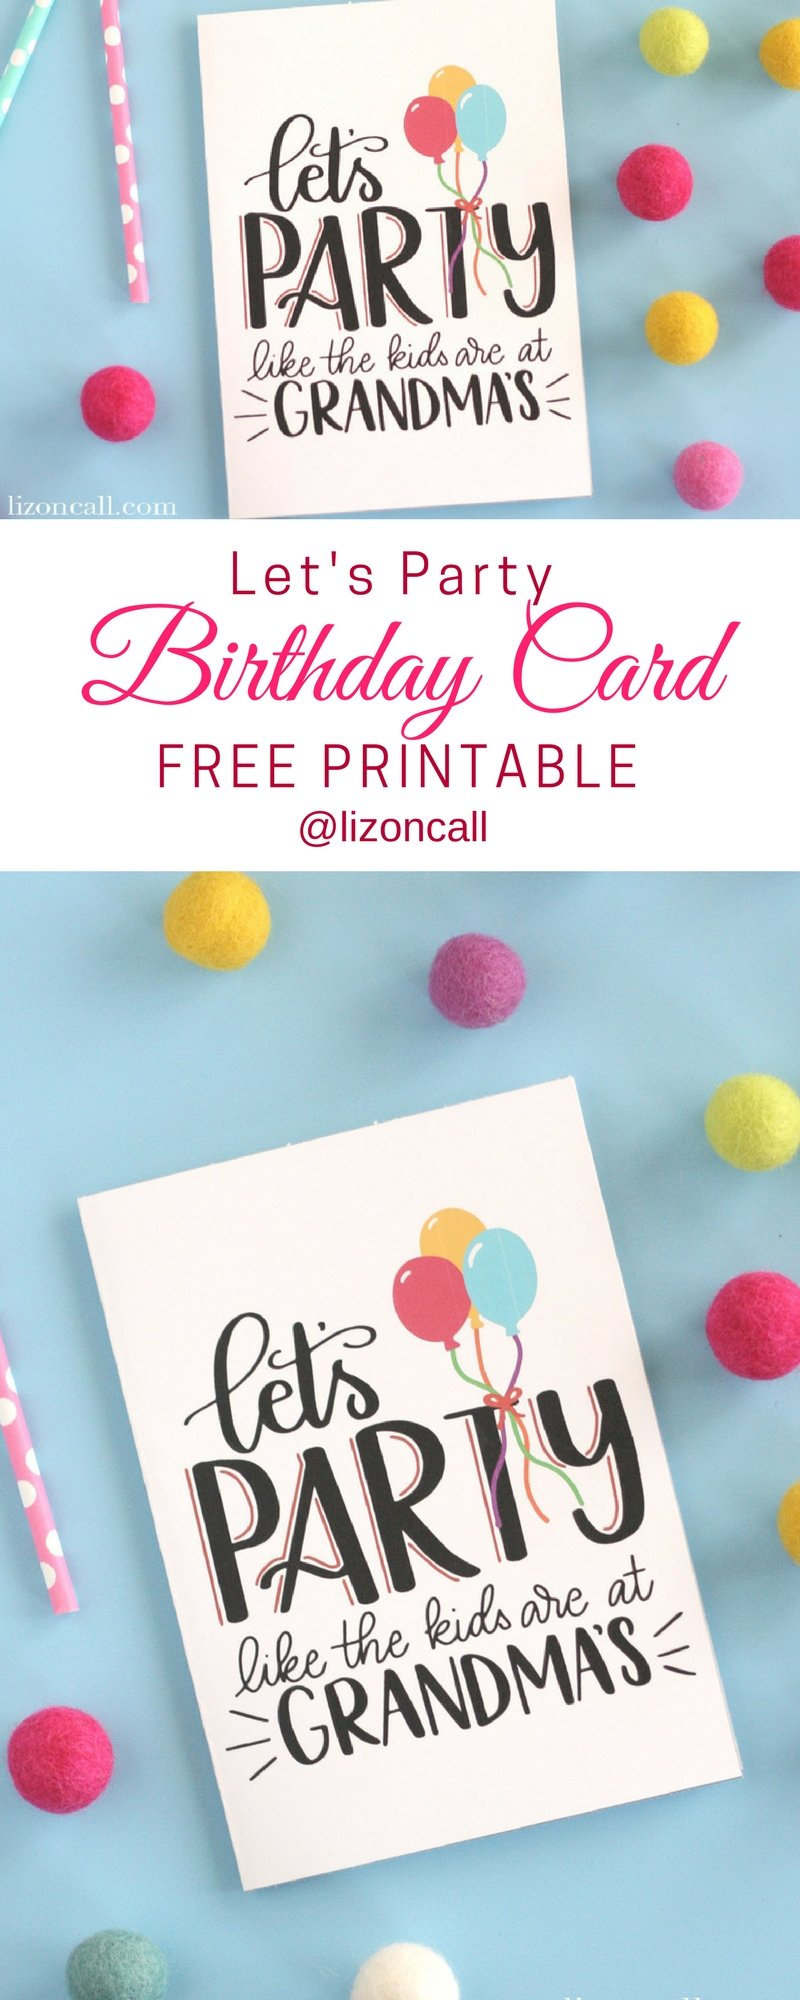 Lets party free printable birthday card liz on call any parent celebrating a birthday is going to love this lets party like the kids are bookmarktalkfo Choice Image